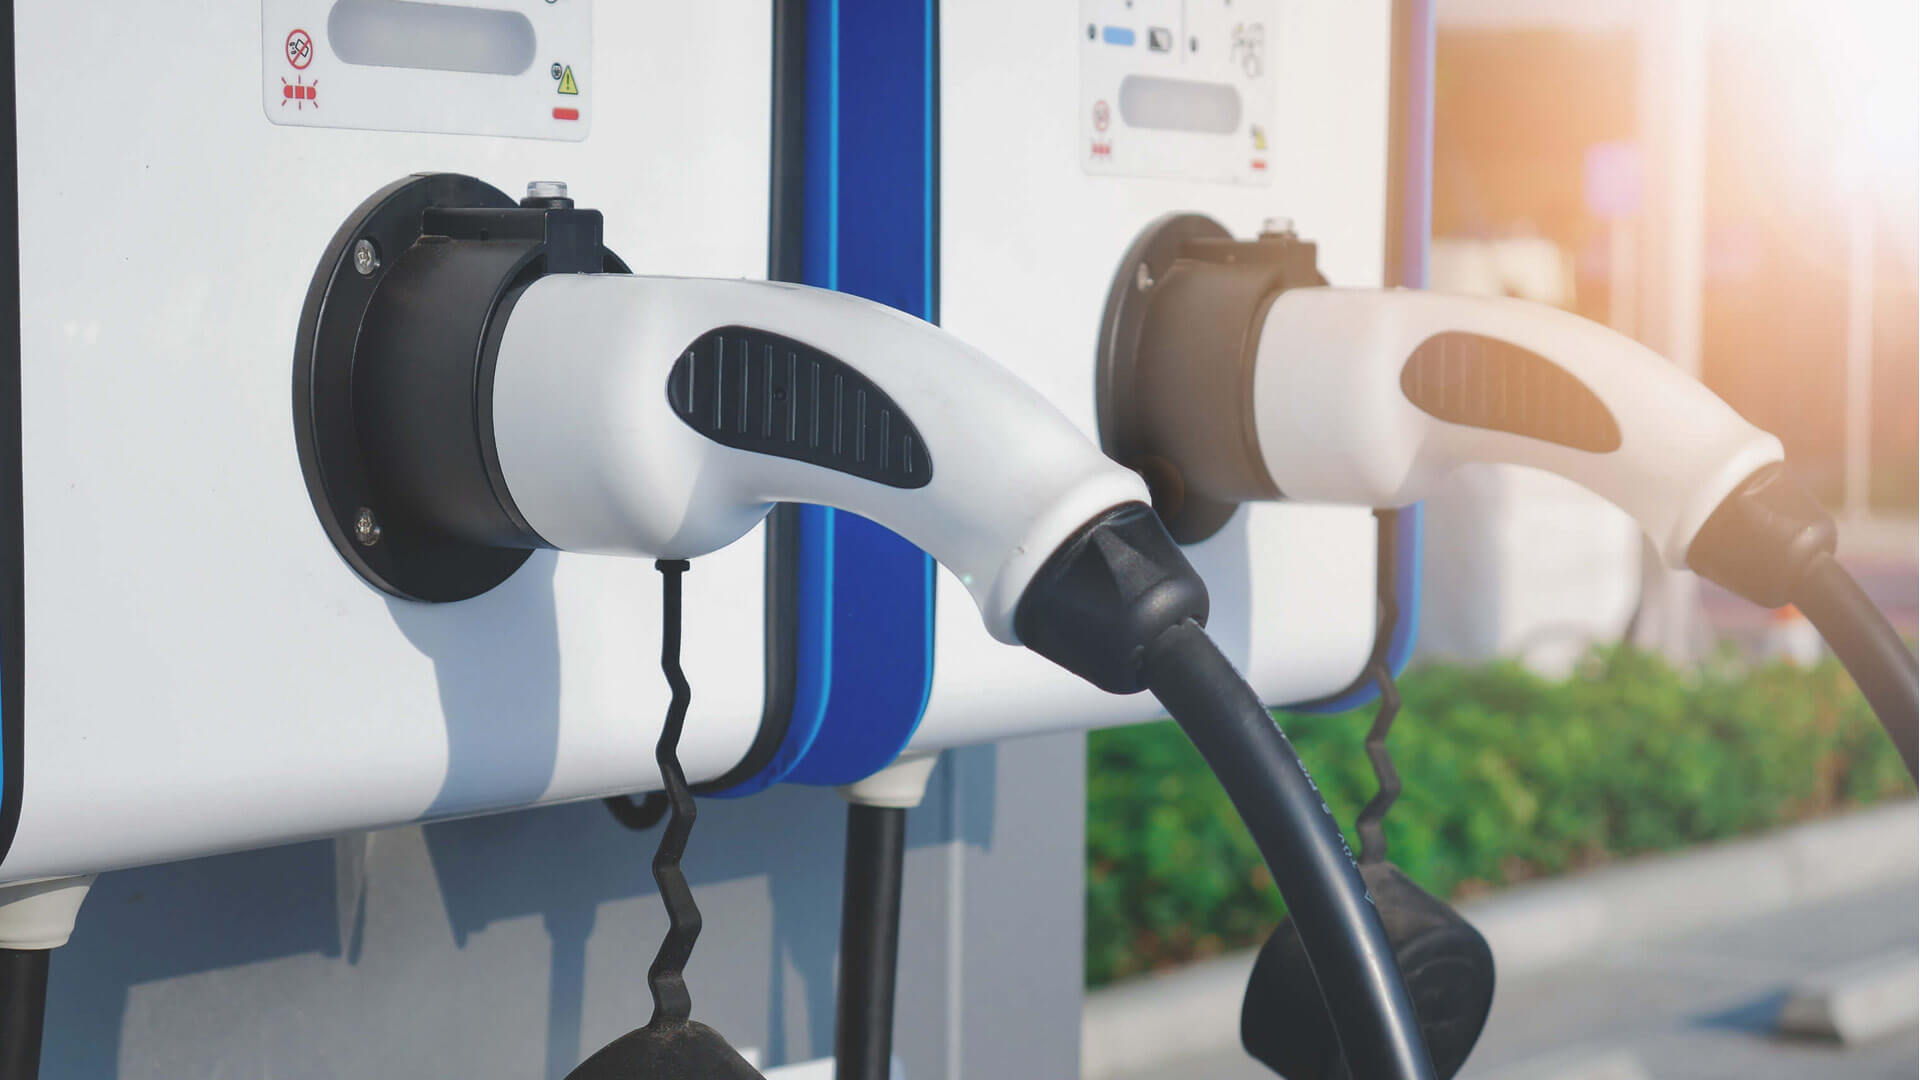 Electric Vehicle Fast Charger Test Equipment - NH Research (NHR)